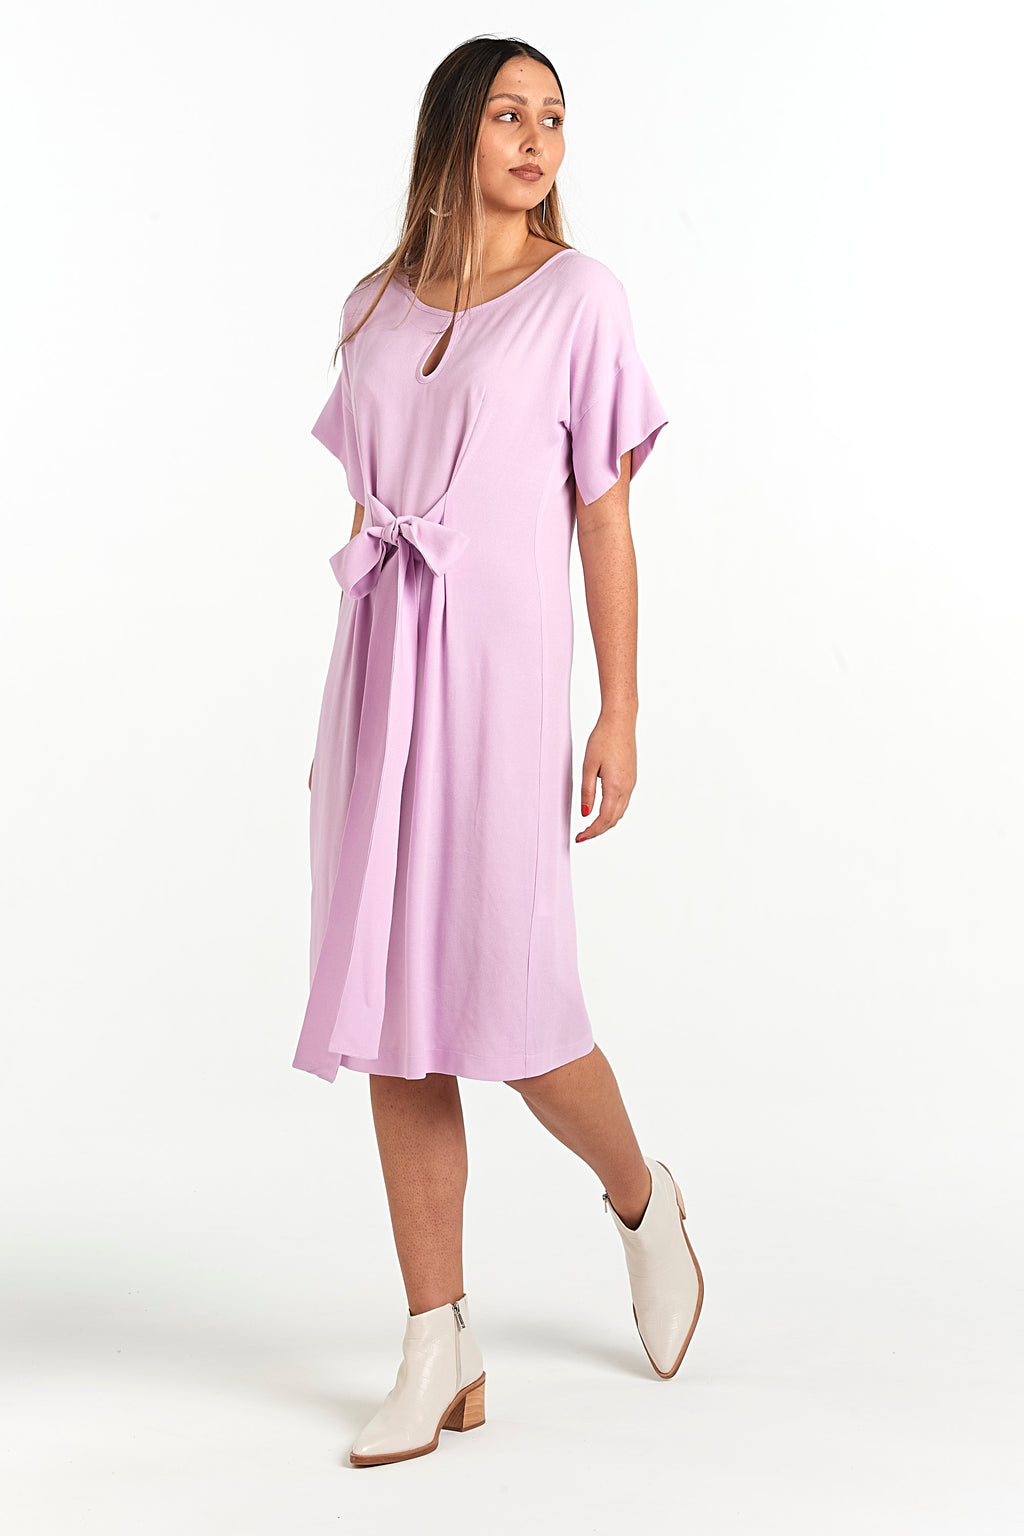 WANAKA DRESS